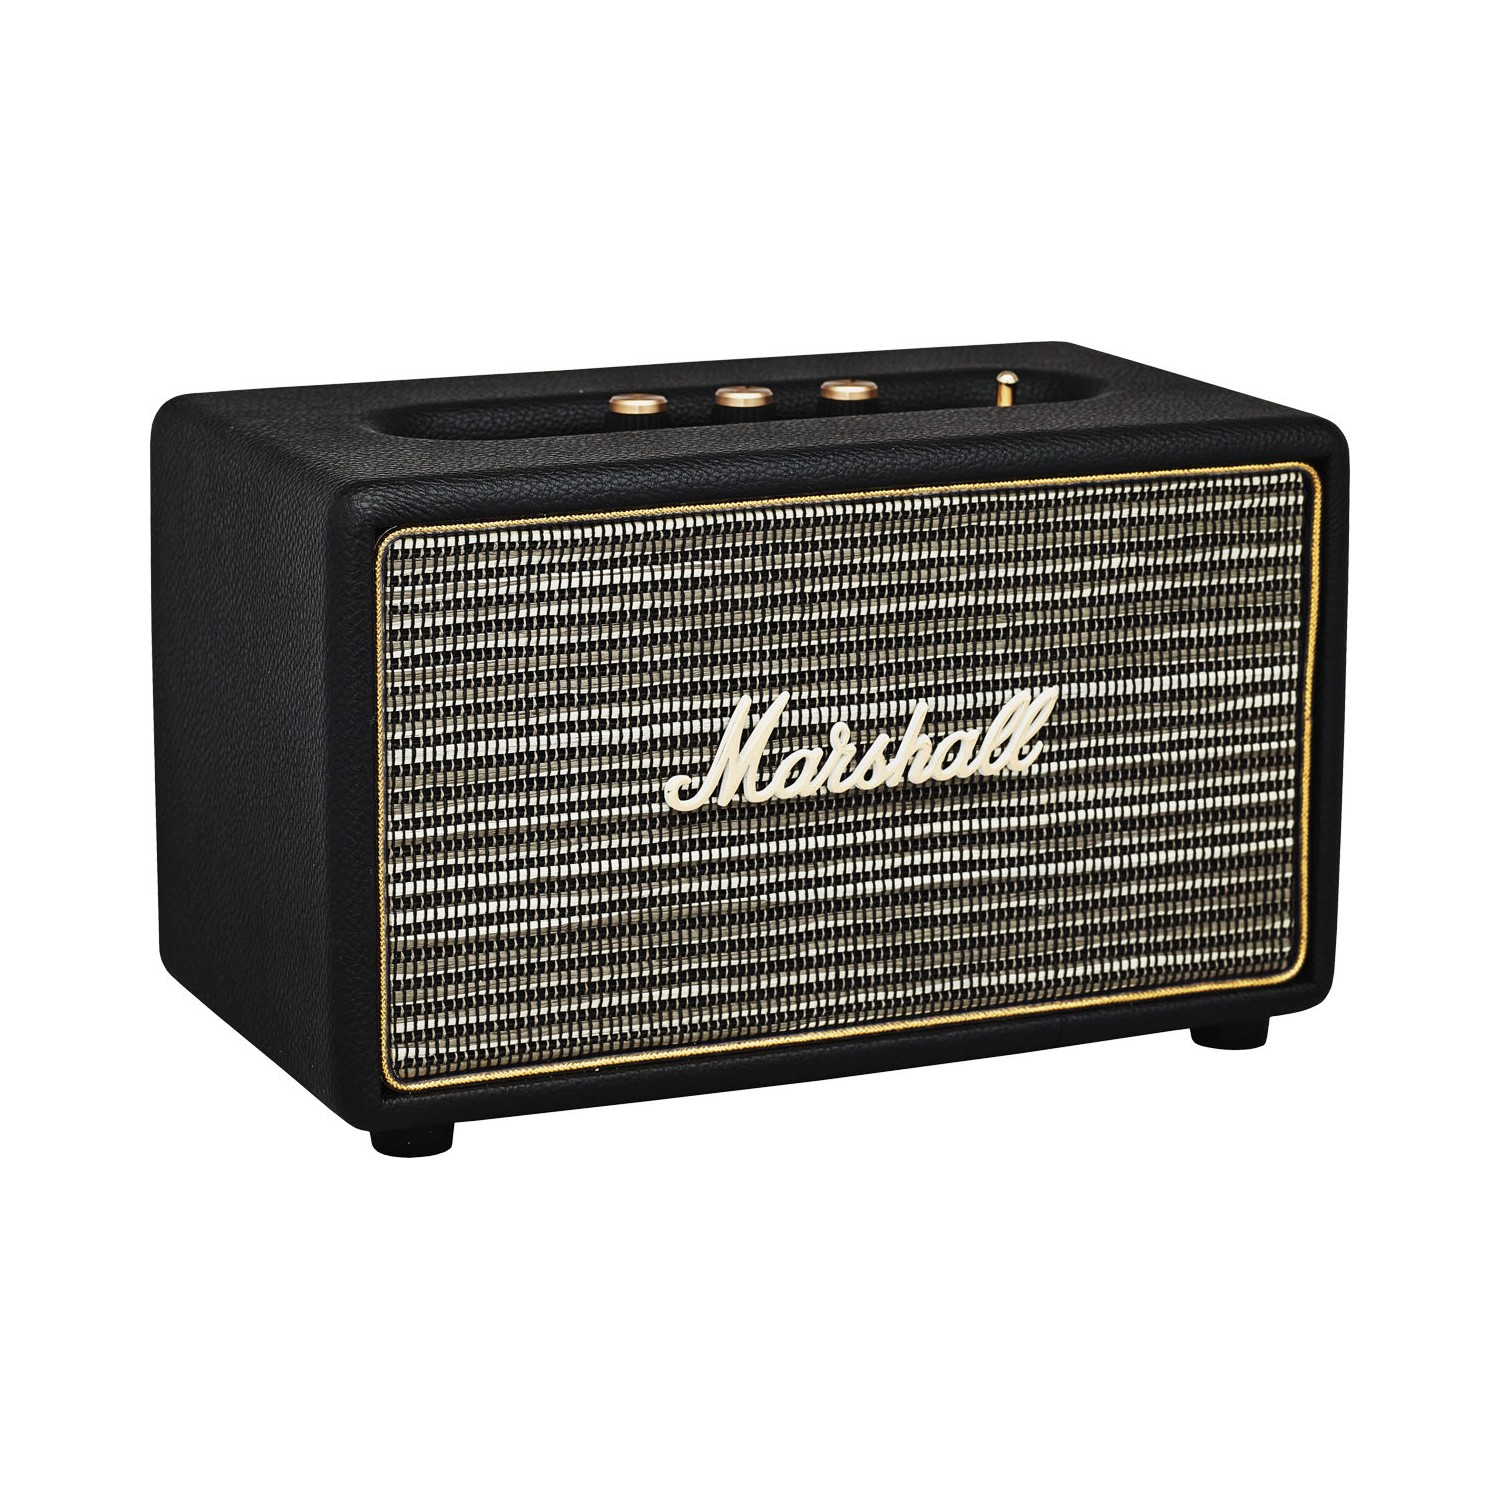 marshall headphones enceinte de salon acton noire haut. Black Bedroom Furniture Sets. Home Design Ideas